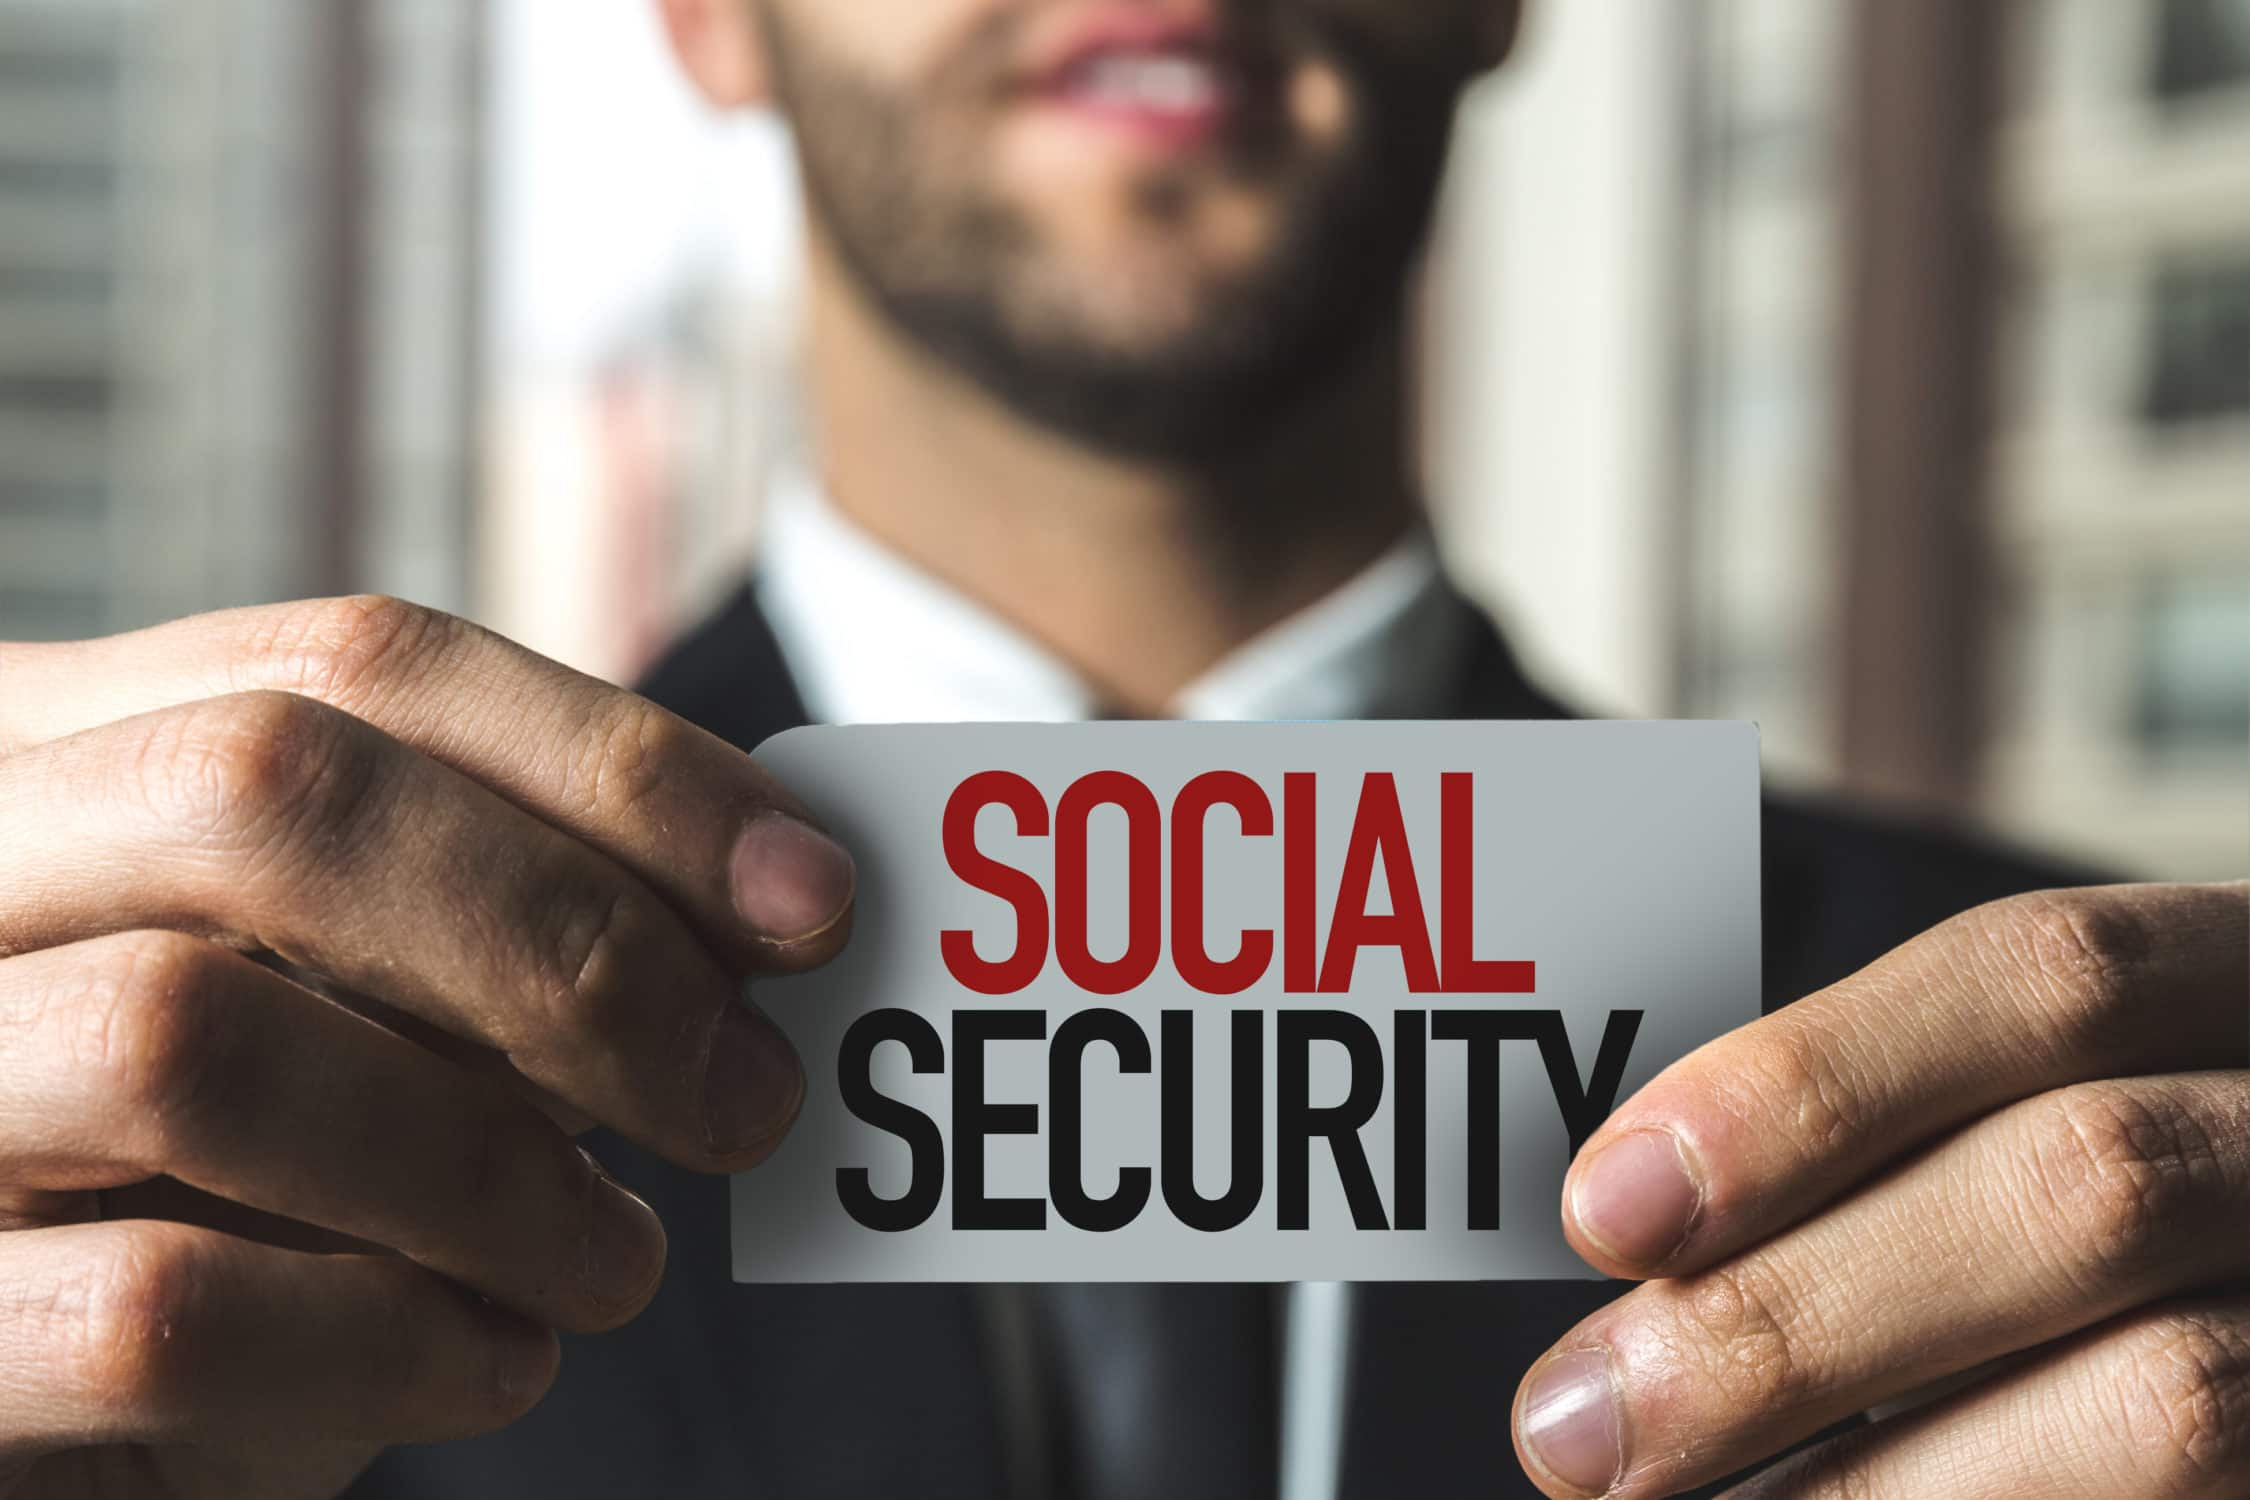 SOCIAL SECURITY LAW SOCIAL SECURITY CONTRIBUTIONS